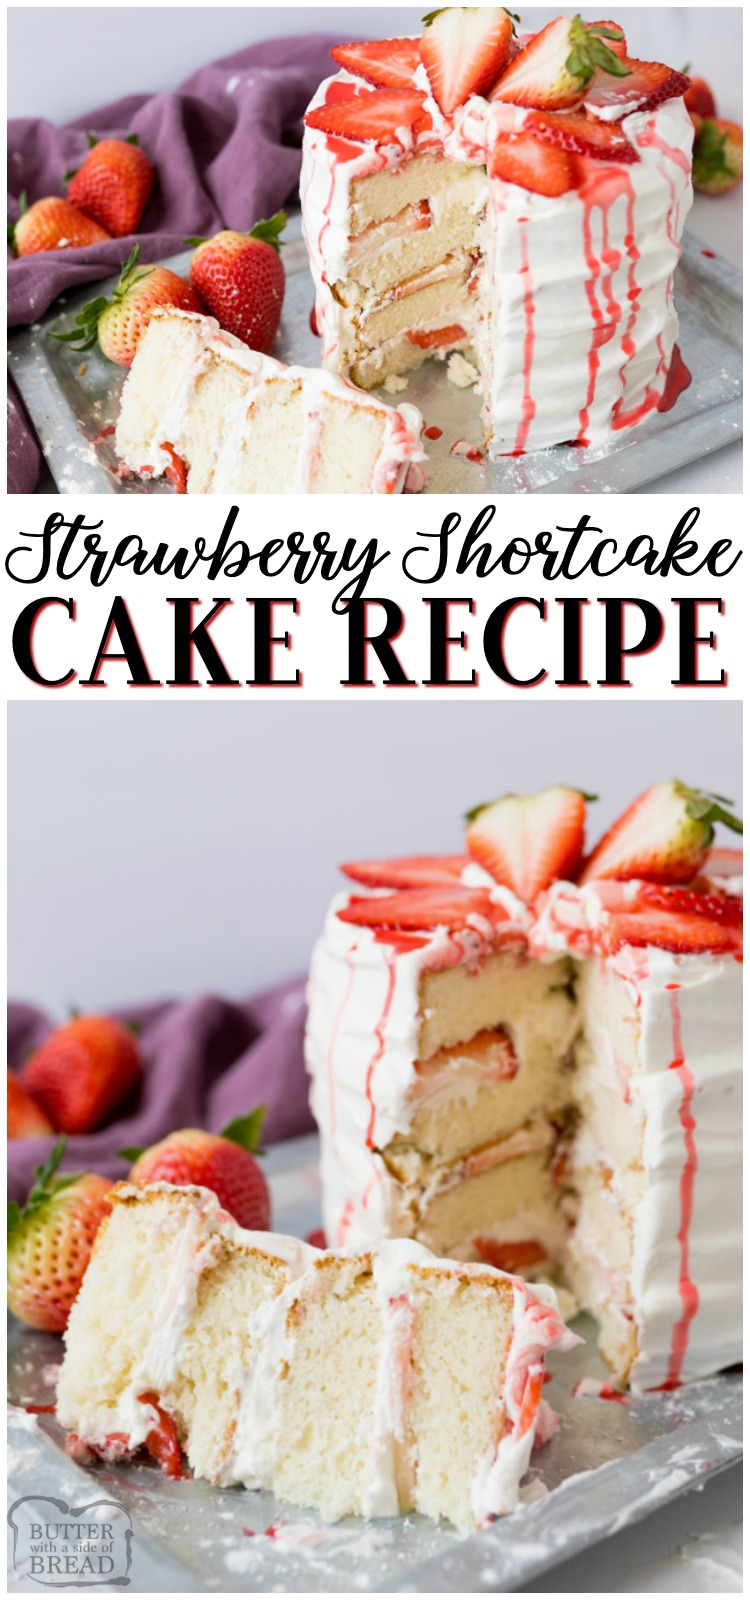 Strawberry Shortcake Cake is a gorgeous vanilla cake filled with whipped vanilla frosting and fresh strawberries. Lovely strawberry shortcake layers make up this easy & elegant strawberry cake. #cake #strawberry #shortcake #strawberries #baking #dessert #recipe from BUTTER WITH A SIDE OF BREAD